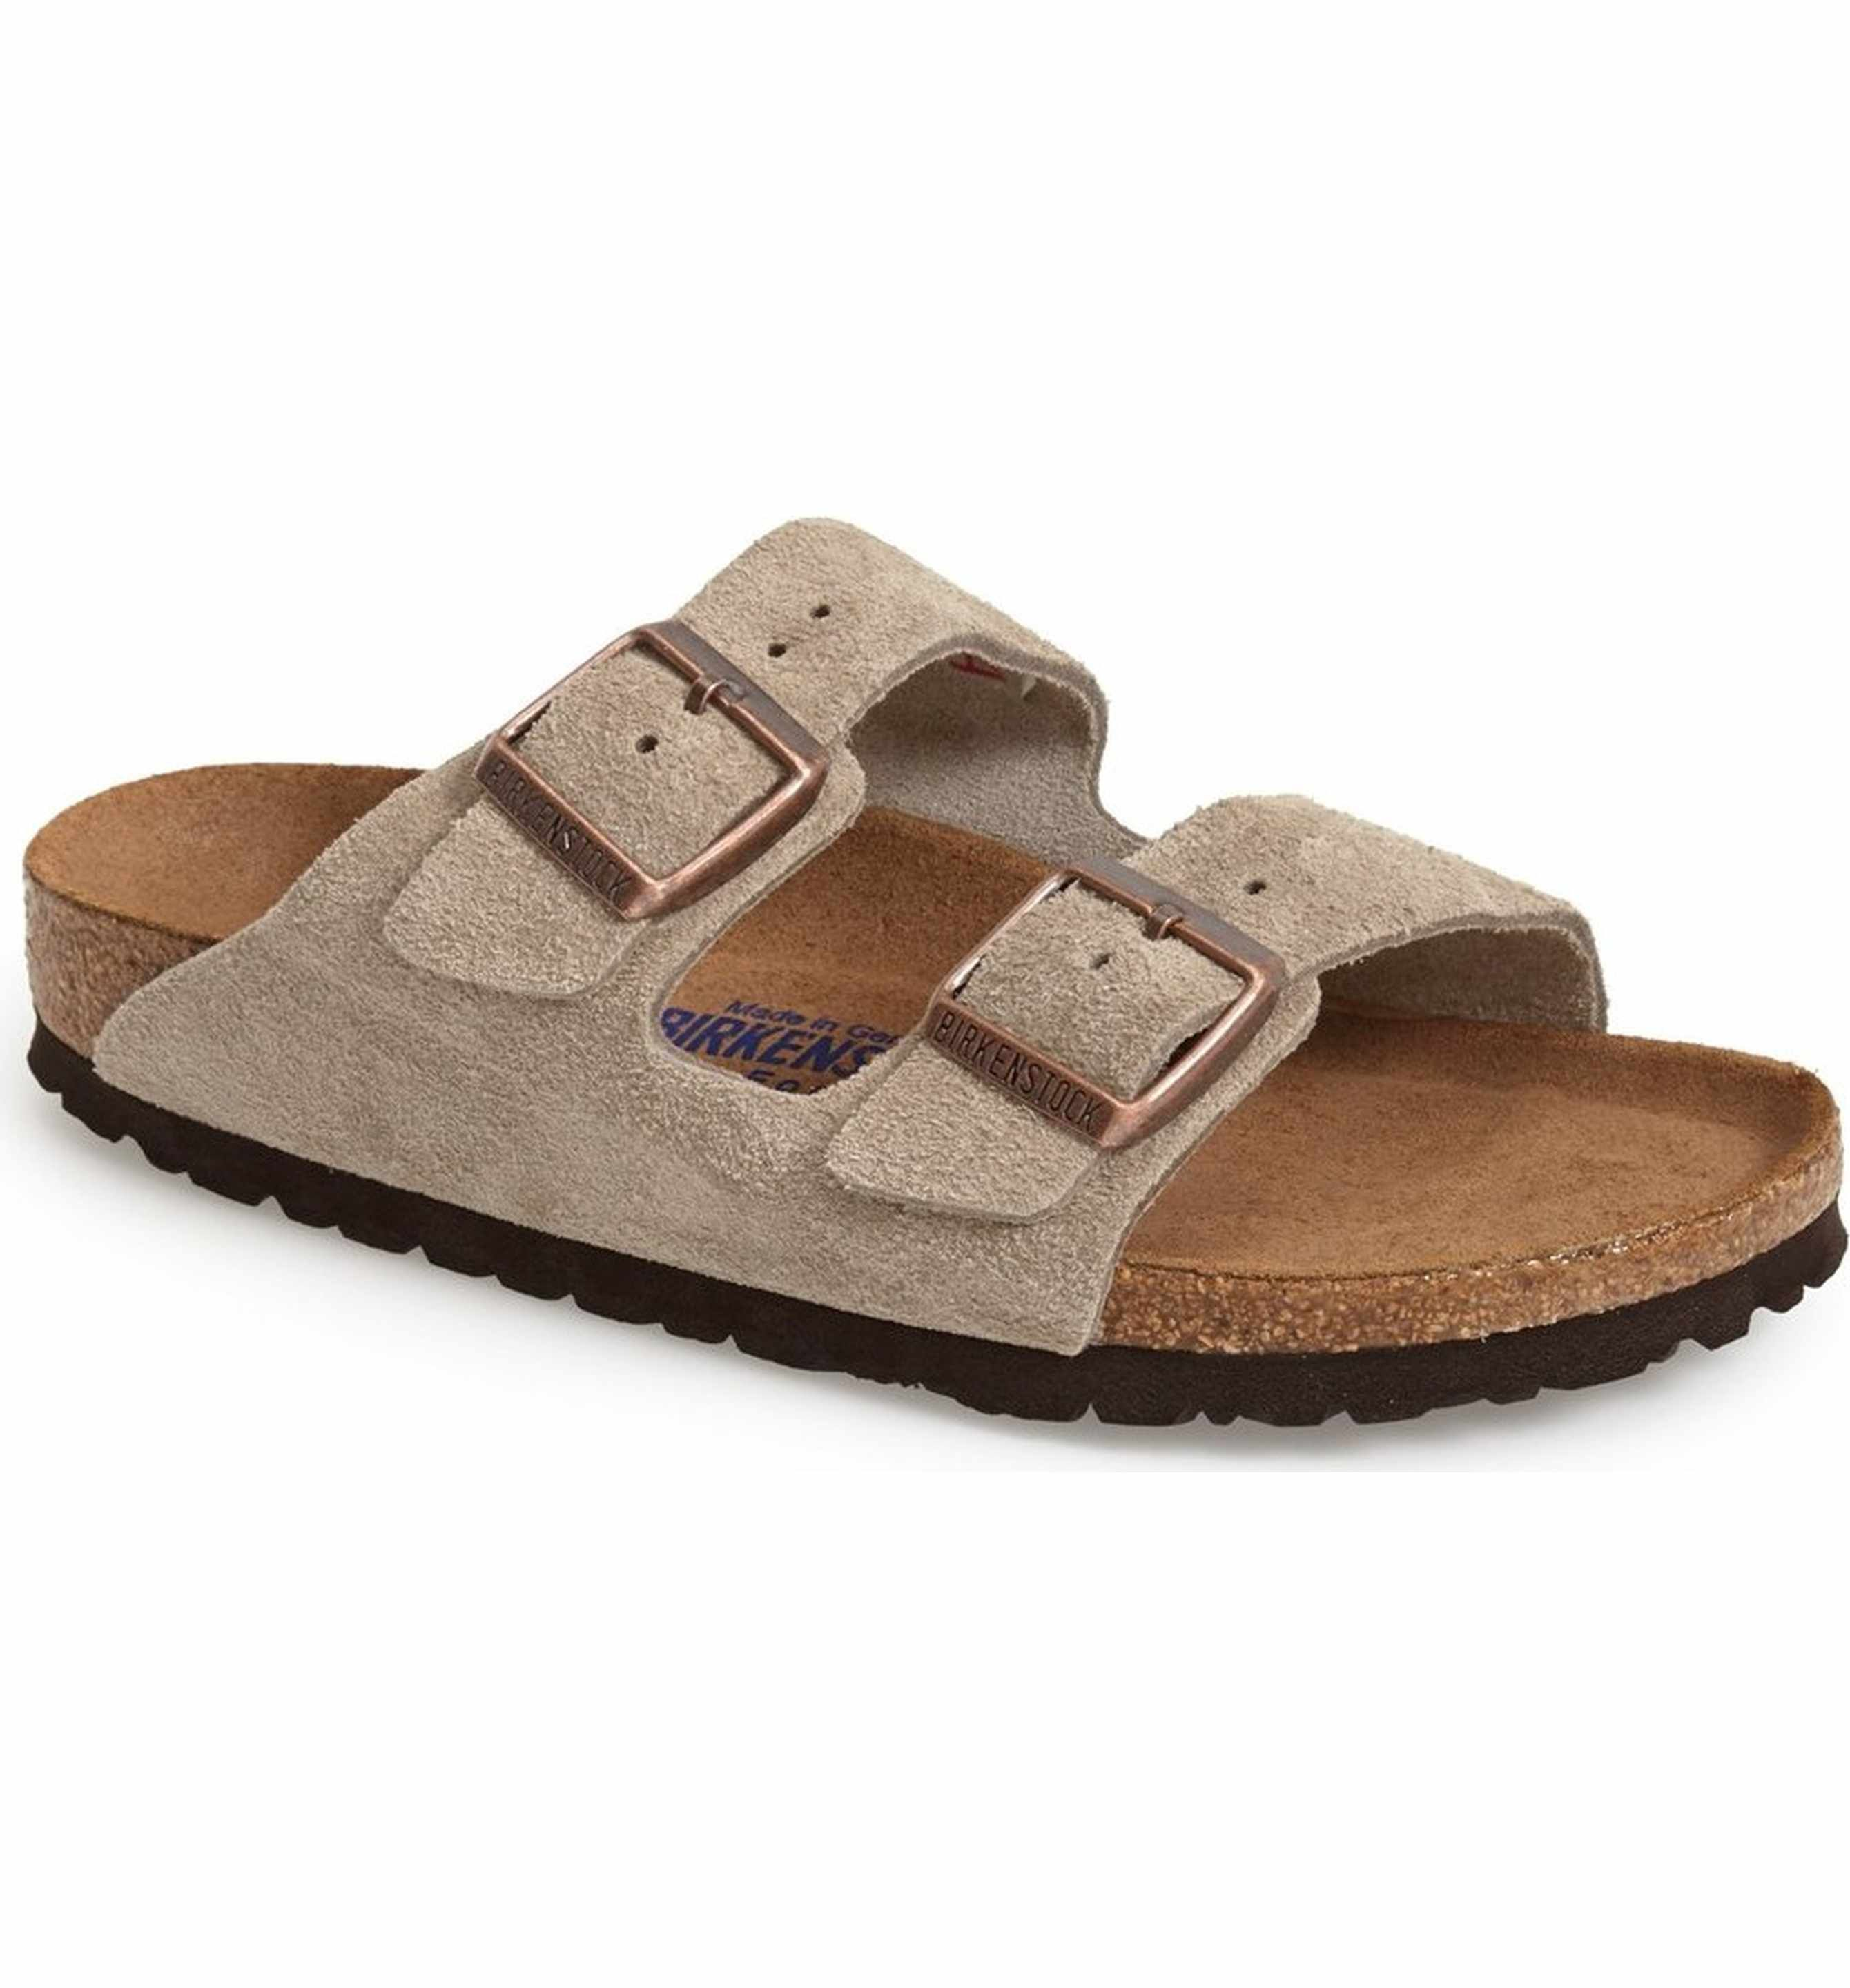 Arizona Soft Slide Sandal by Birkenstock, available on nordstrom.com for $134.95 Kendall Jenner Shoes Exact Product